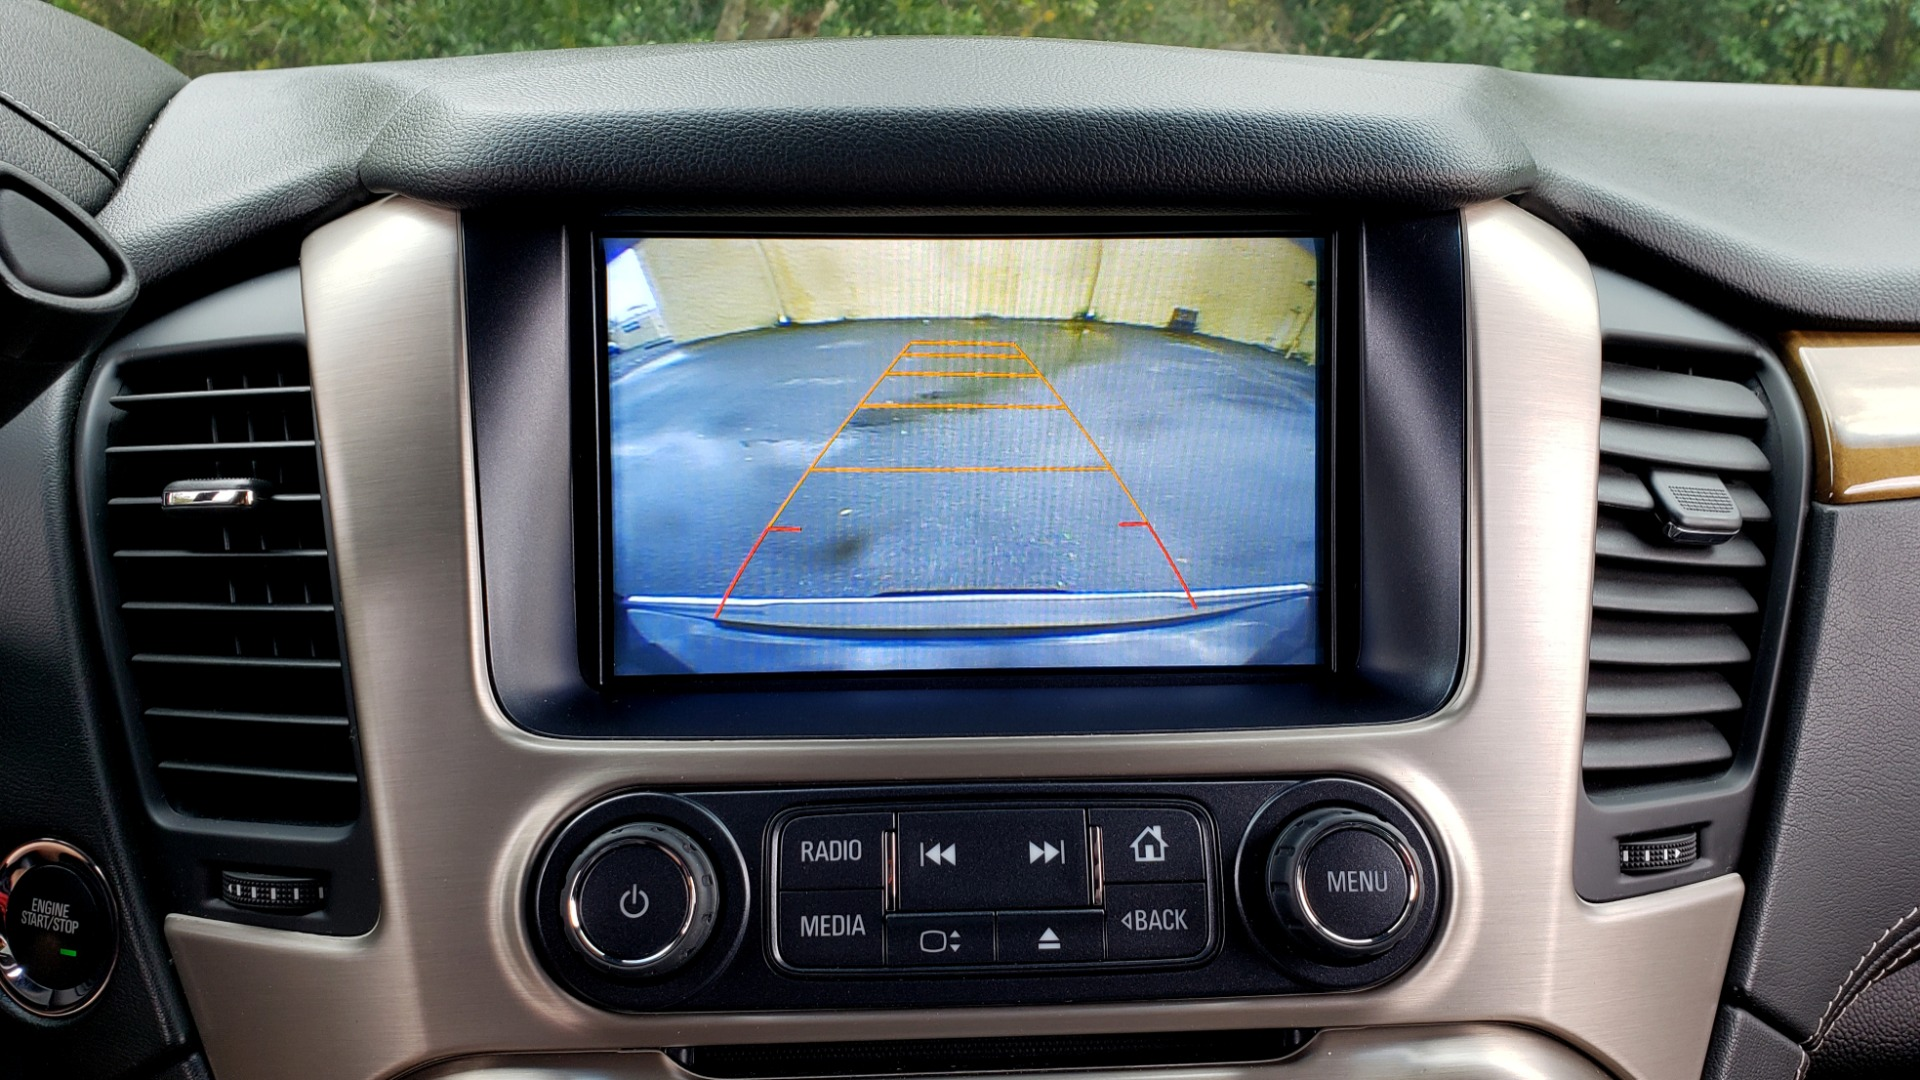 Used 2017 GMC YUKON XL DENALI 4WD / NAV / SUNROOF / ENT / 3-ROWS / BOSE / REARVIEW for sale $48,695 at Formula Imports in Charlotte NC 28227 51